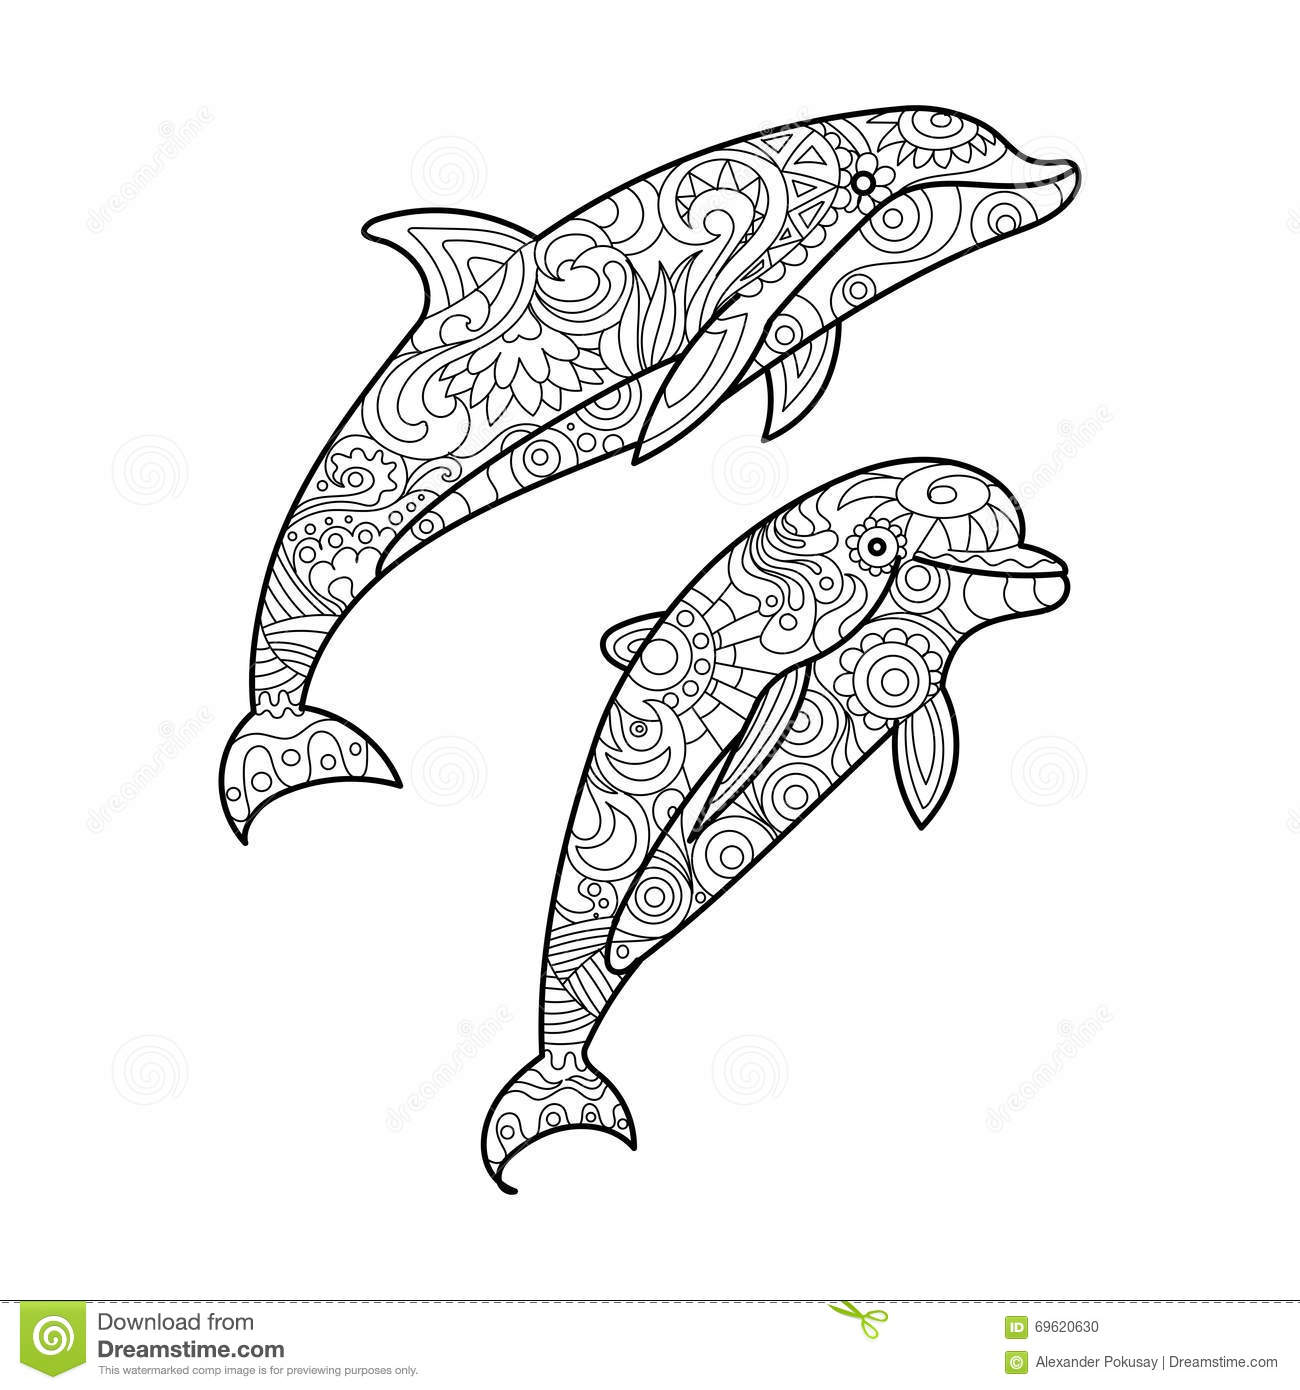 dolphin coloring book for adults vector stock vector image 69620630